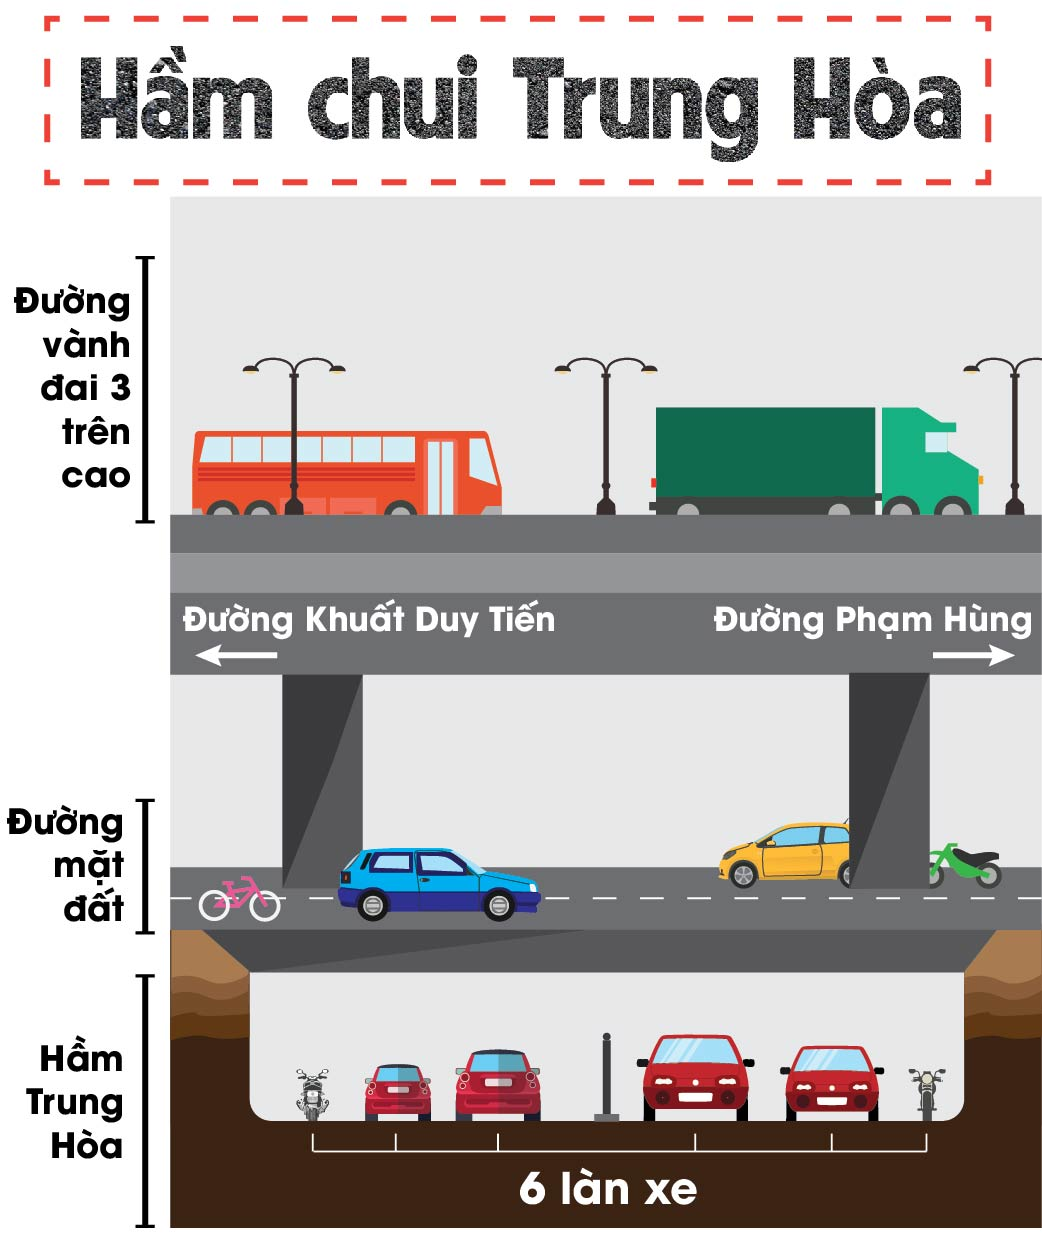 [infographic] toan canh 2 ham chui lon nhat ha noi hinh anh 2